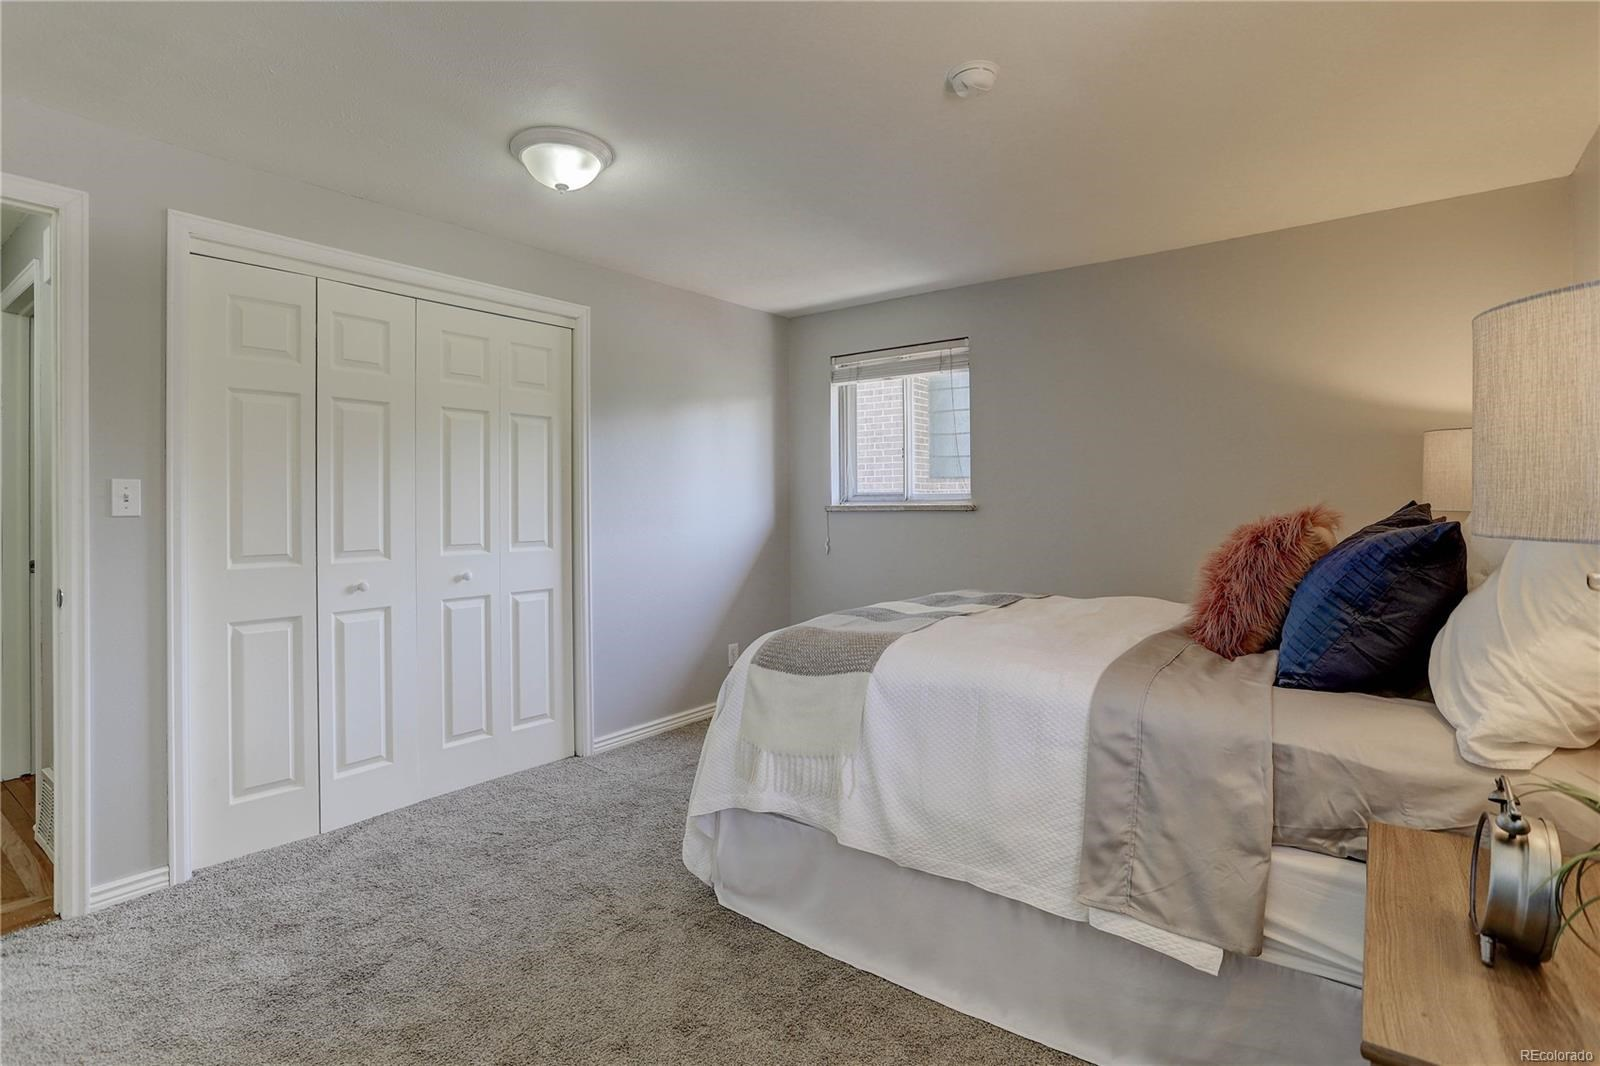 MLS# 2968148 - 16 - 2931 S Downing Street, Englewood, CO 80113